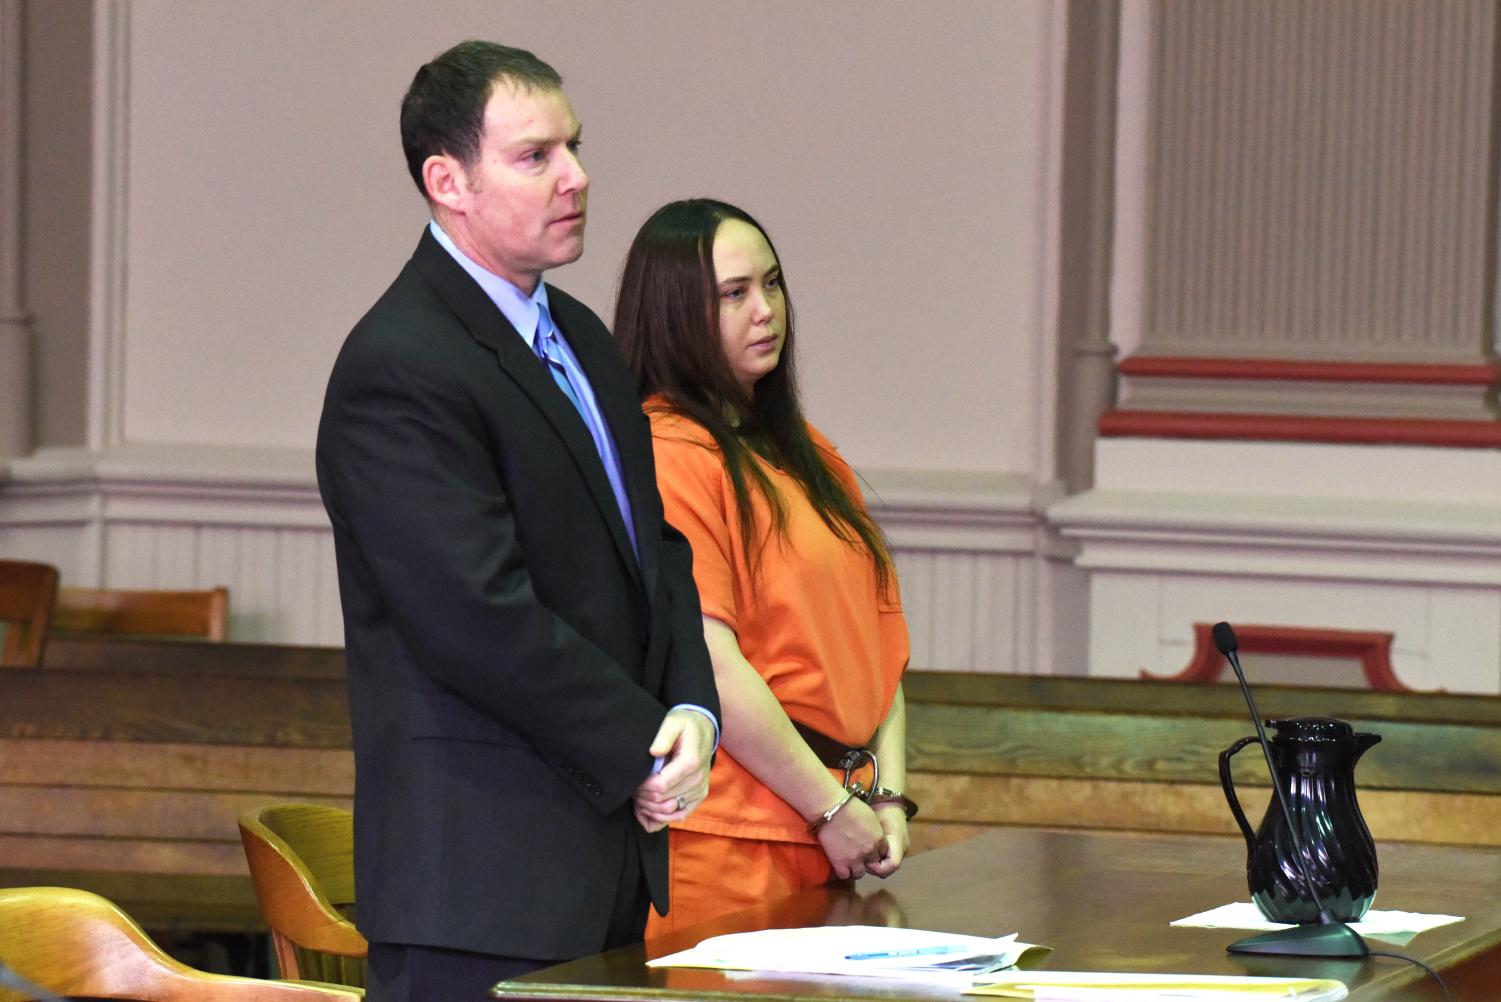 Hope Brugh pleaded guilty to 11 felonies Monday morning alongside her defense attorney David Mortimer in the Muskingum County Court of Common Pleas.